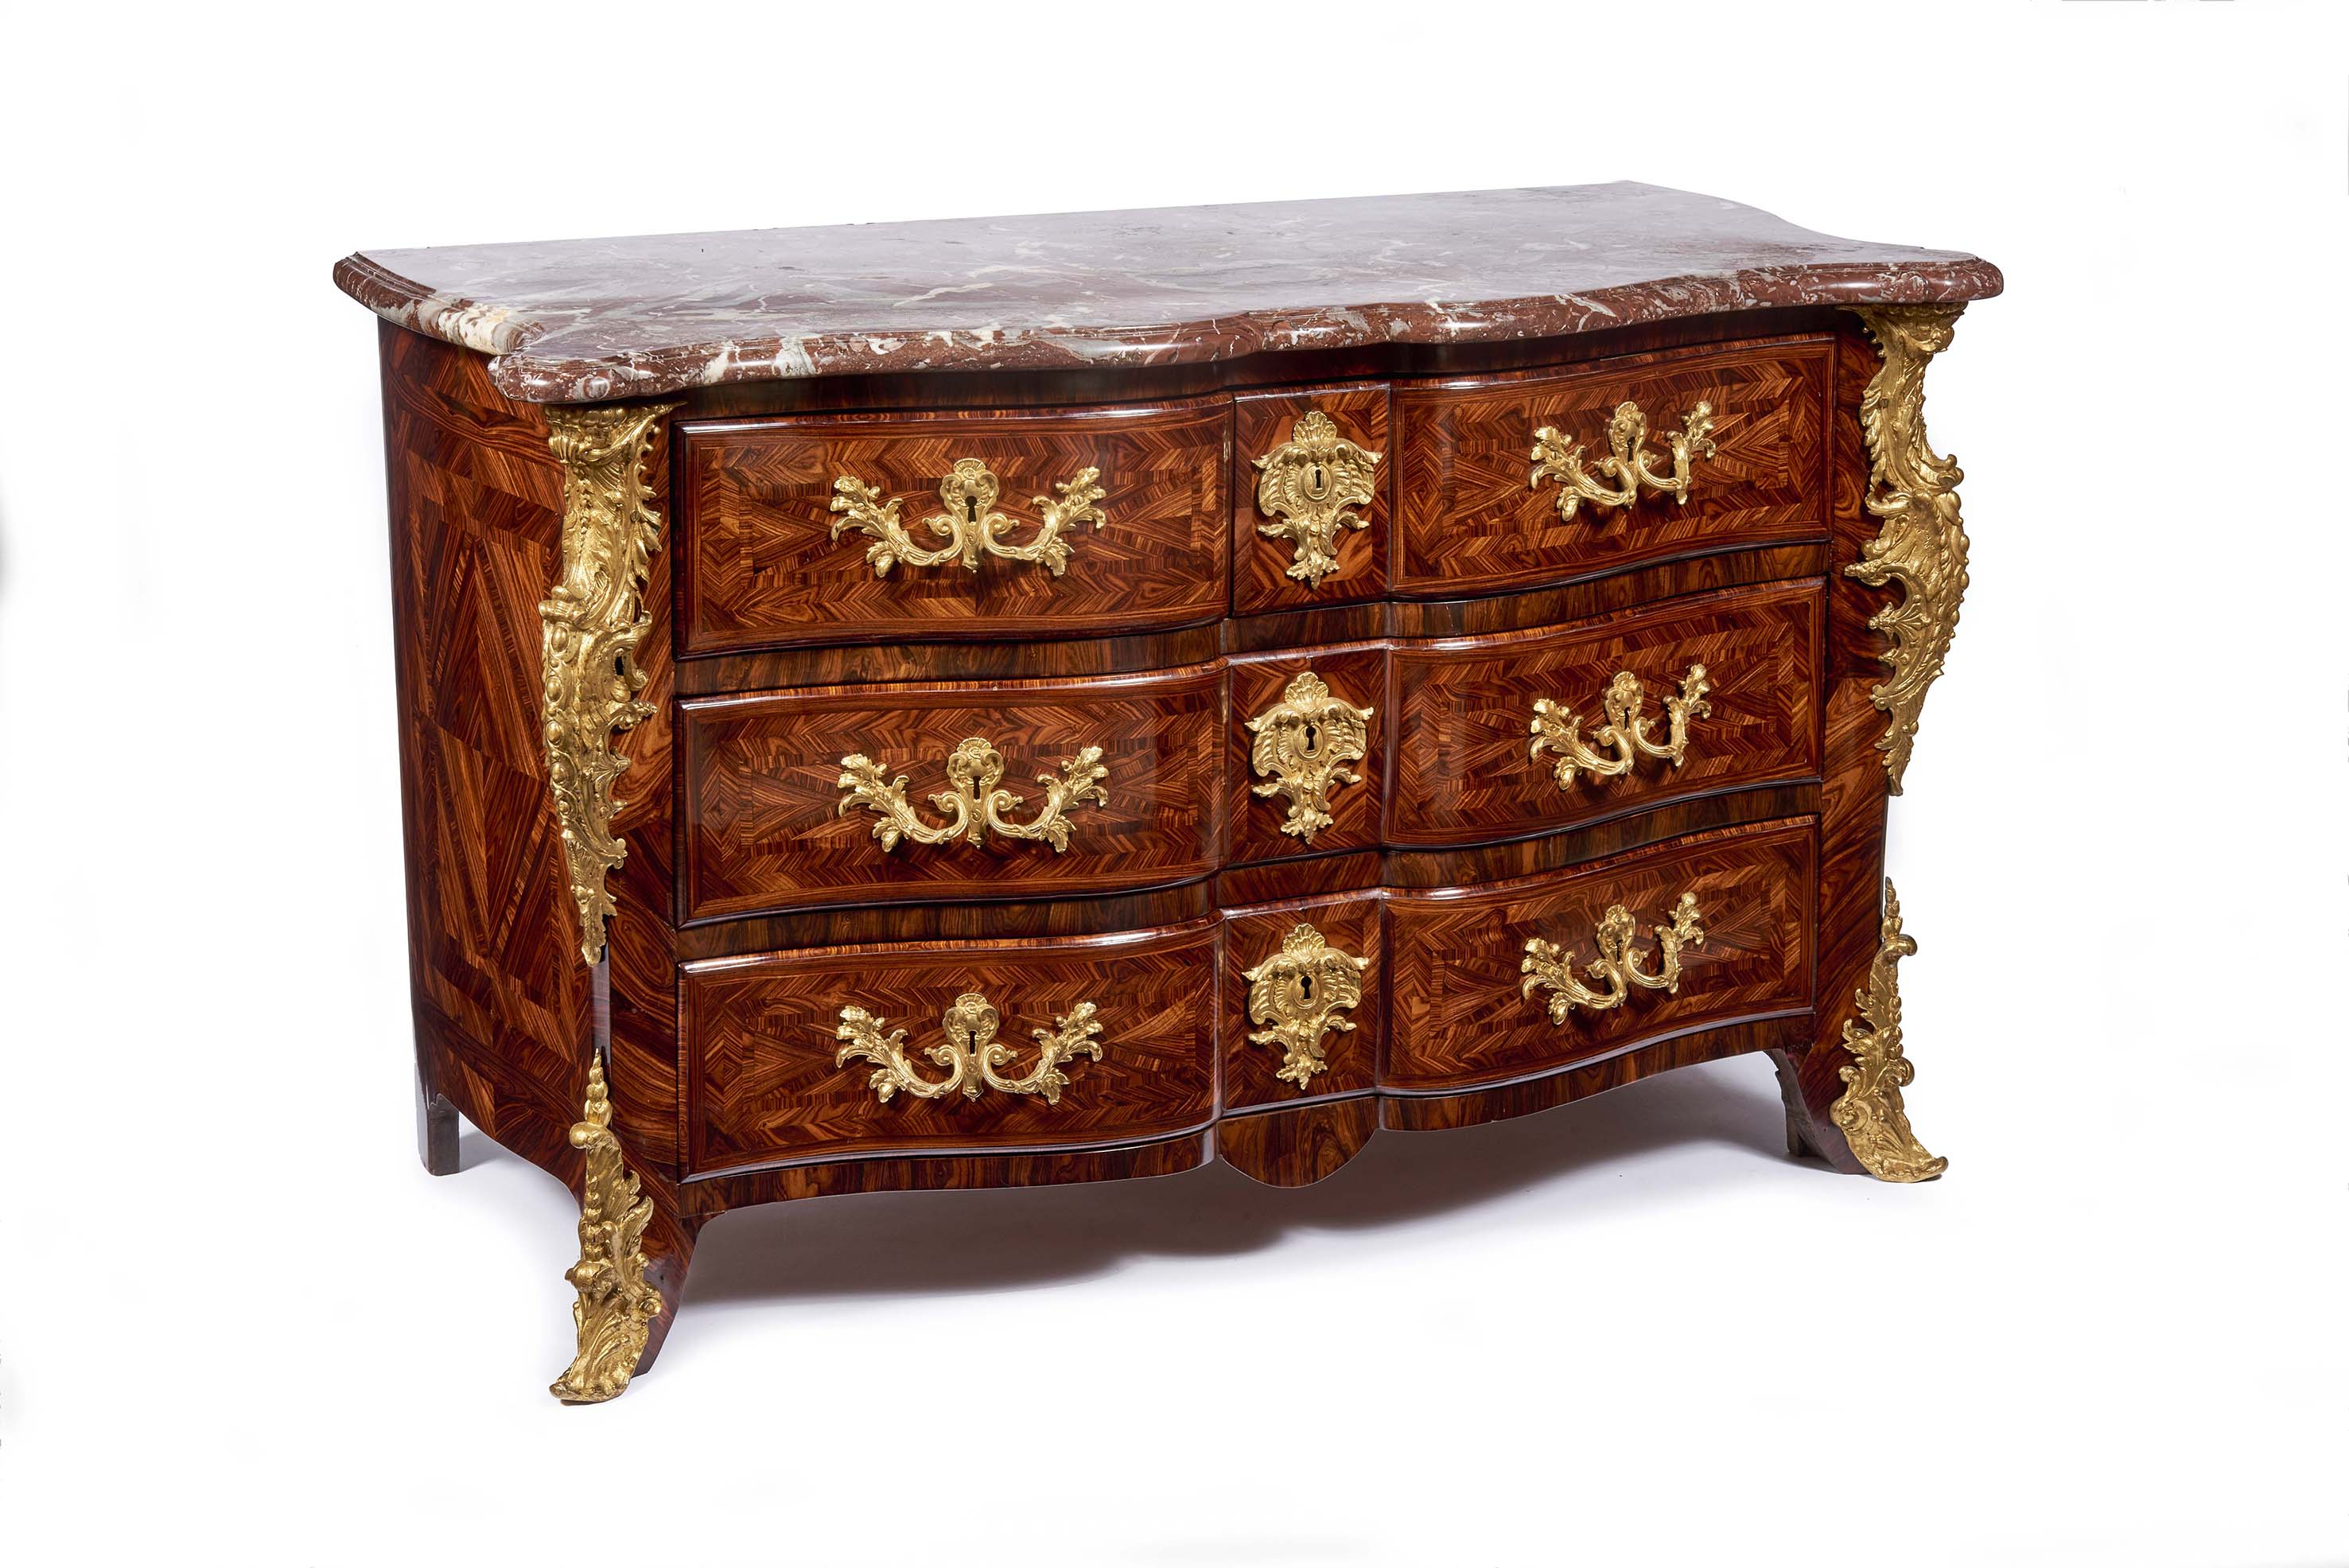 grande commode r gence galerie damidot antiquaire dijon. Black Bedroom Furniture Sets. Home Design Ideas